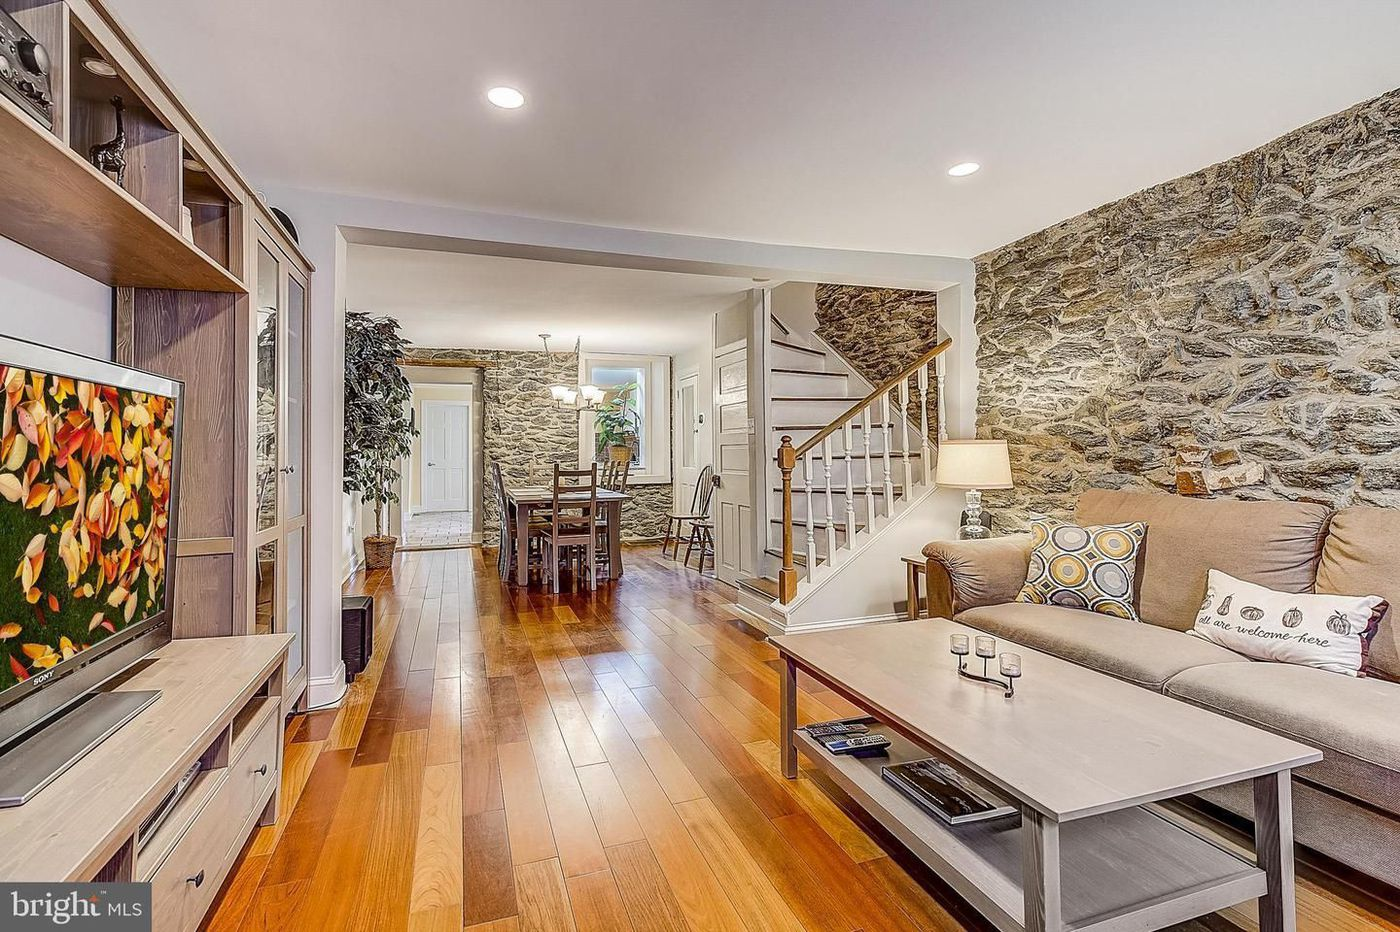 On the market: A century-old house in Manayunk for $359,900